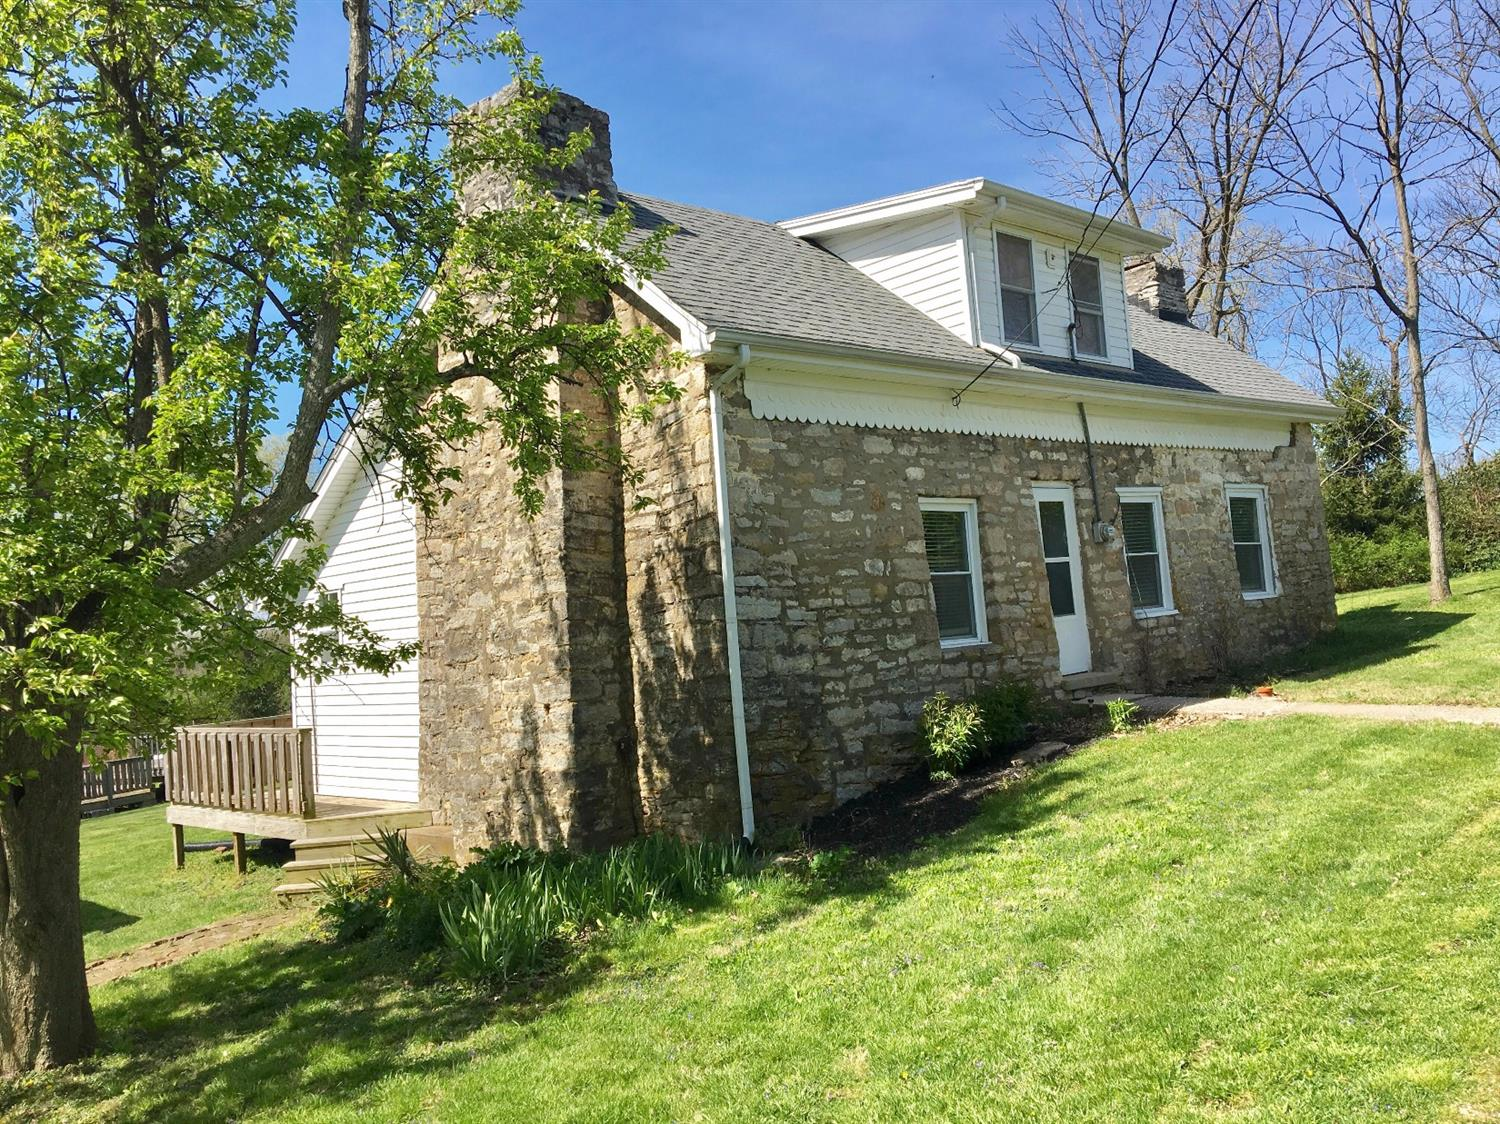 Home For Sale at 2148-Tct 5 Leestown Rd, Frankfort, KY 40601